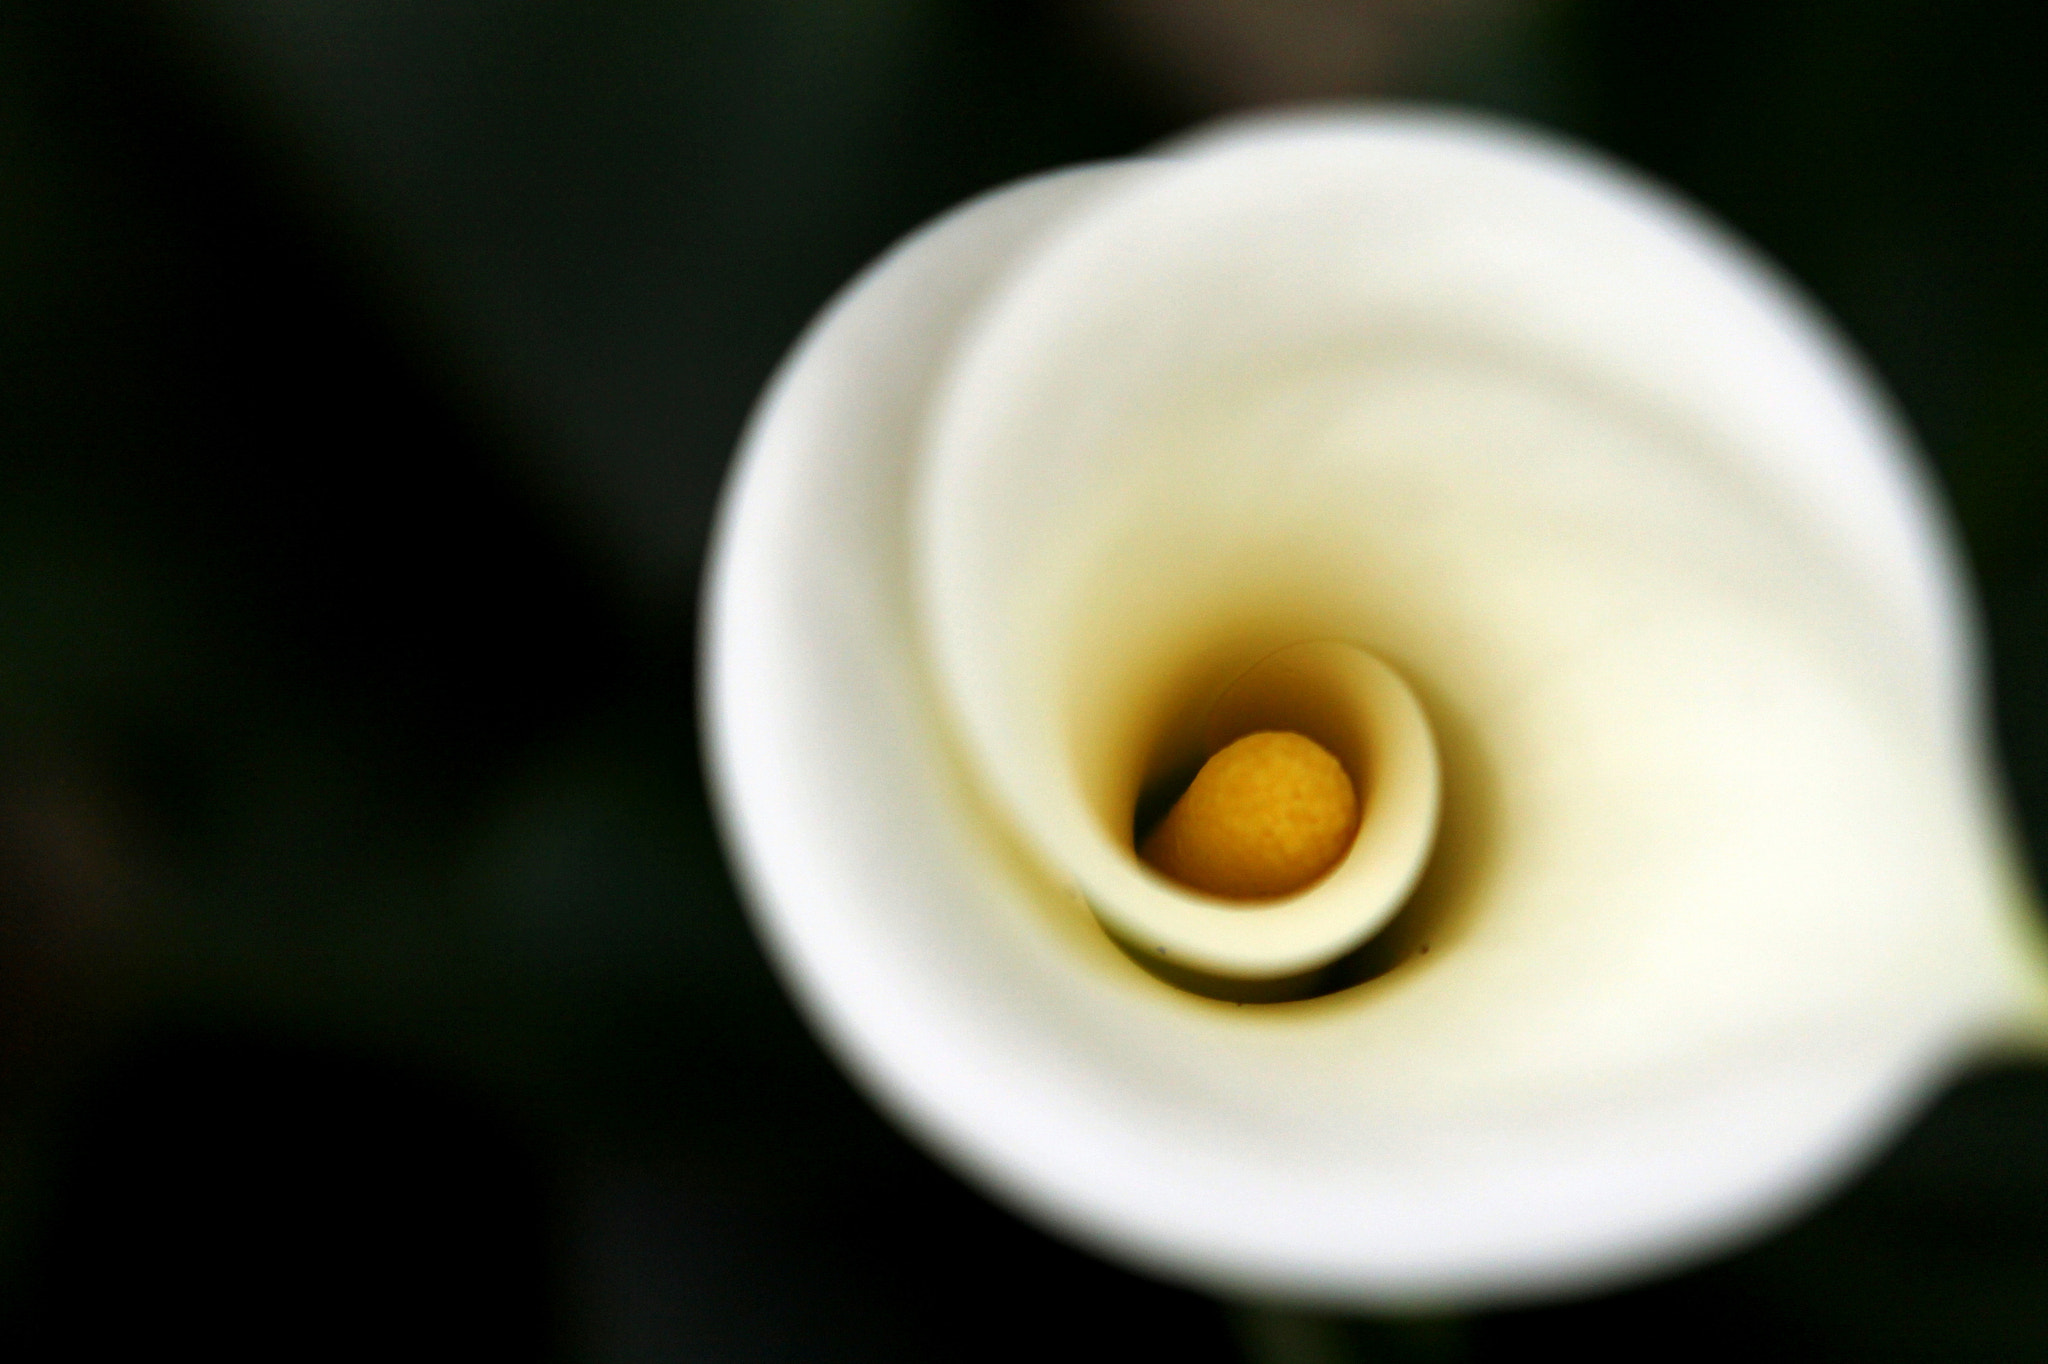 Photograph White Flower by Monique K. on 500px